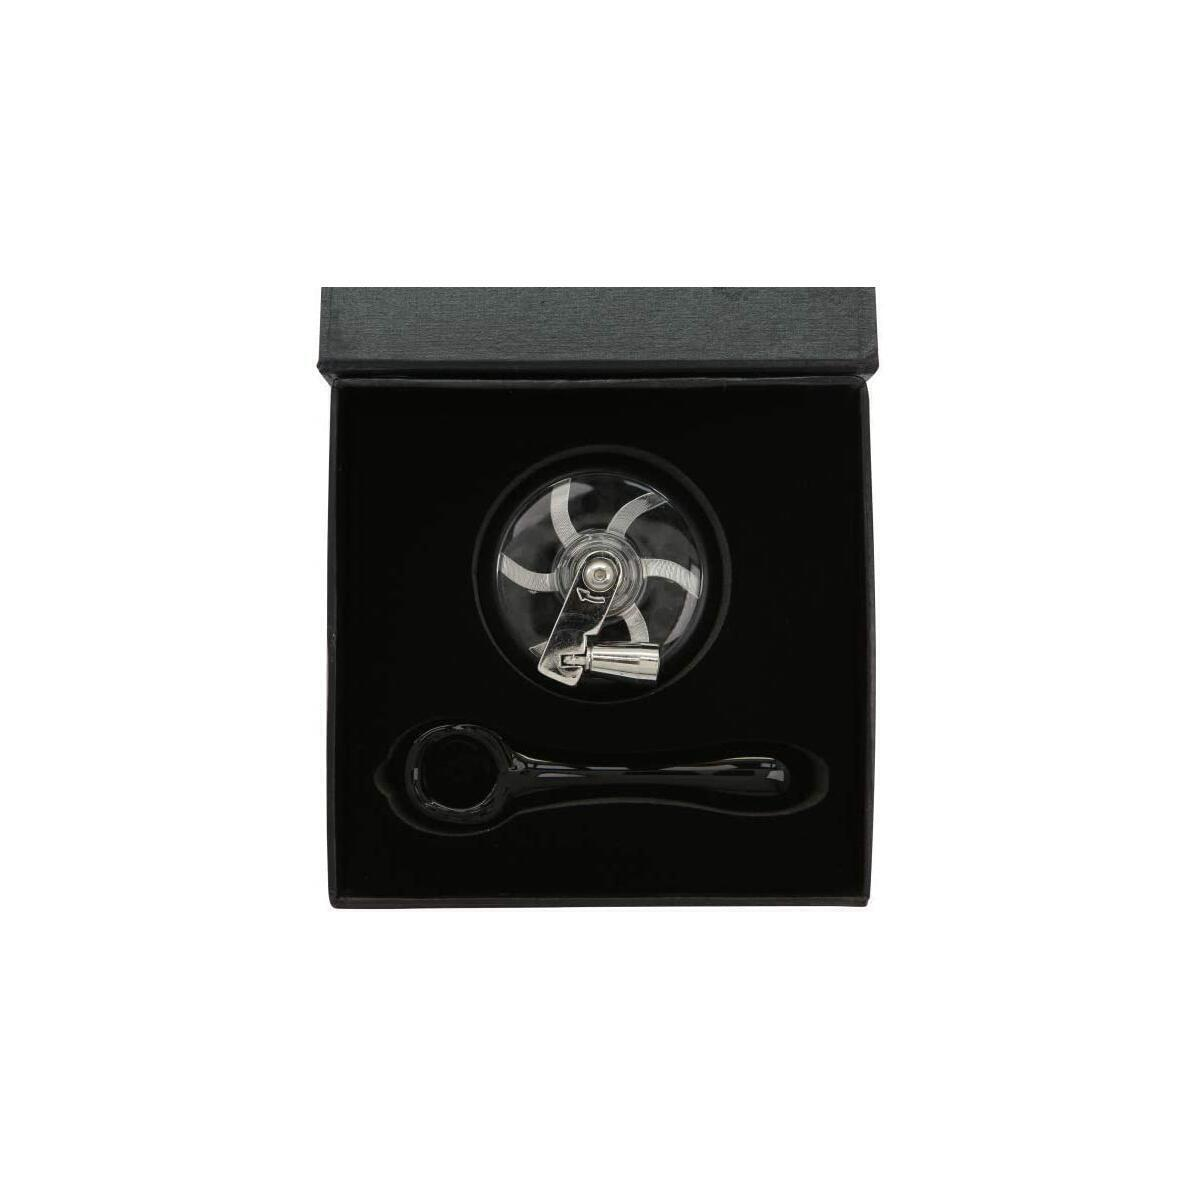 [AMMAKE]Hand Cranked Black herb Grinder and Skull Glass Accessories. Aluminum Grinder for Herb and Spice 4 Parts 2.2 Inch